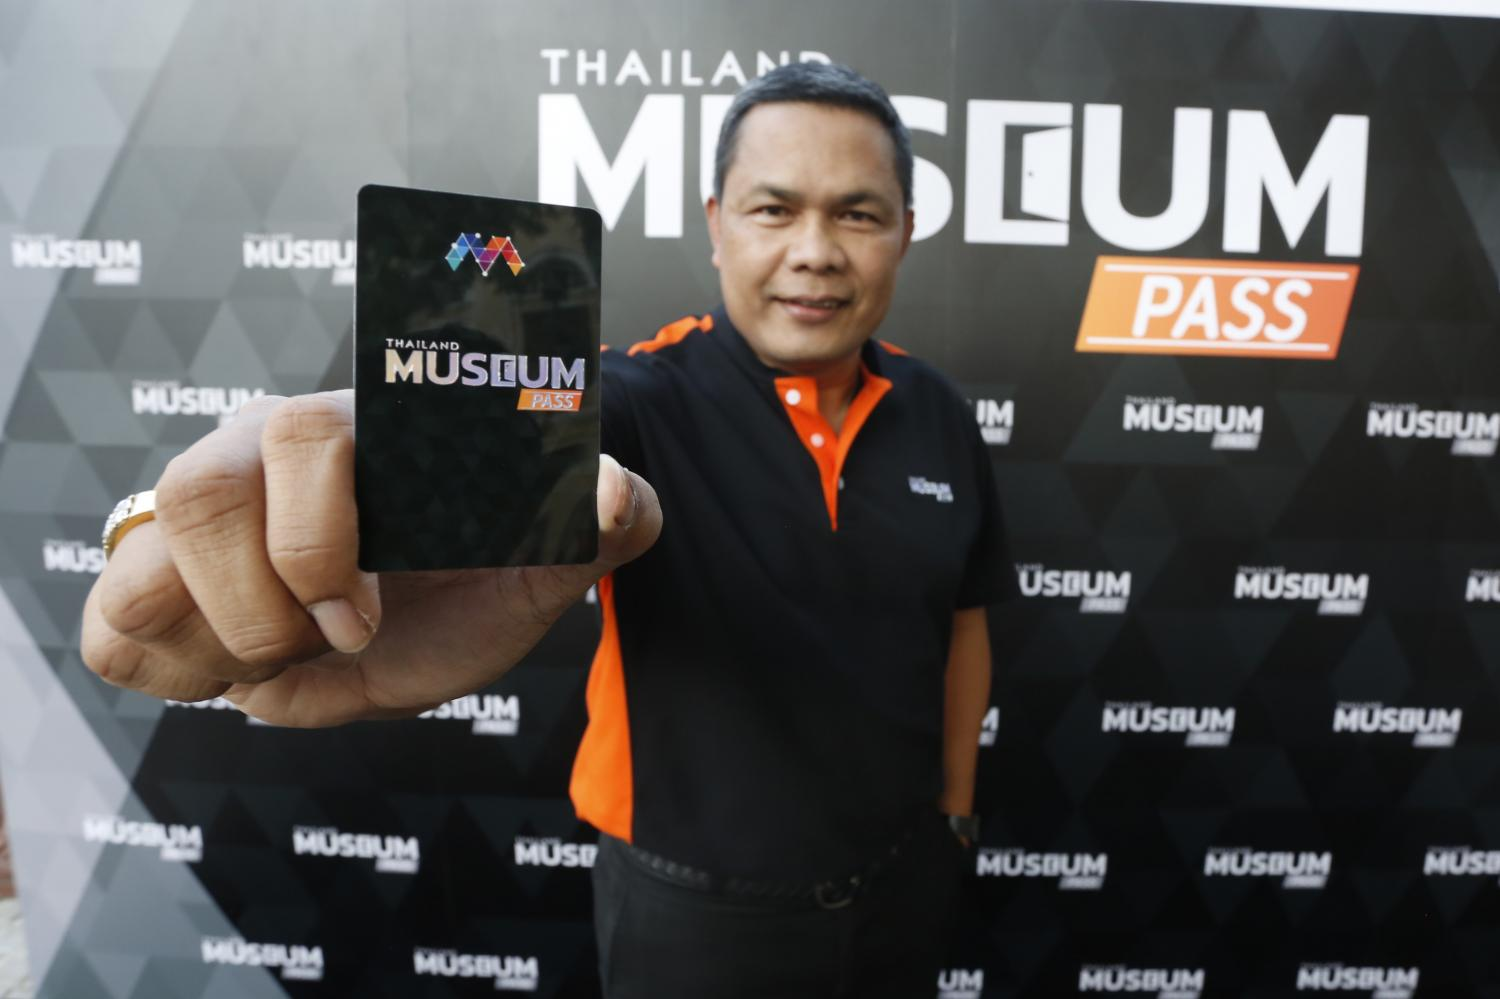 Mr Rames presents the Thailand Museum Pass, which will offer entry to participating museums.